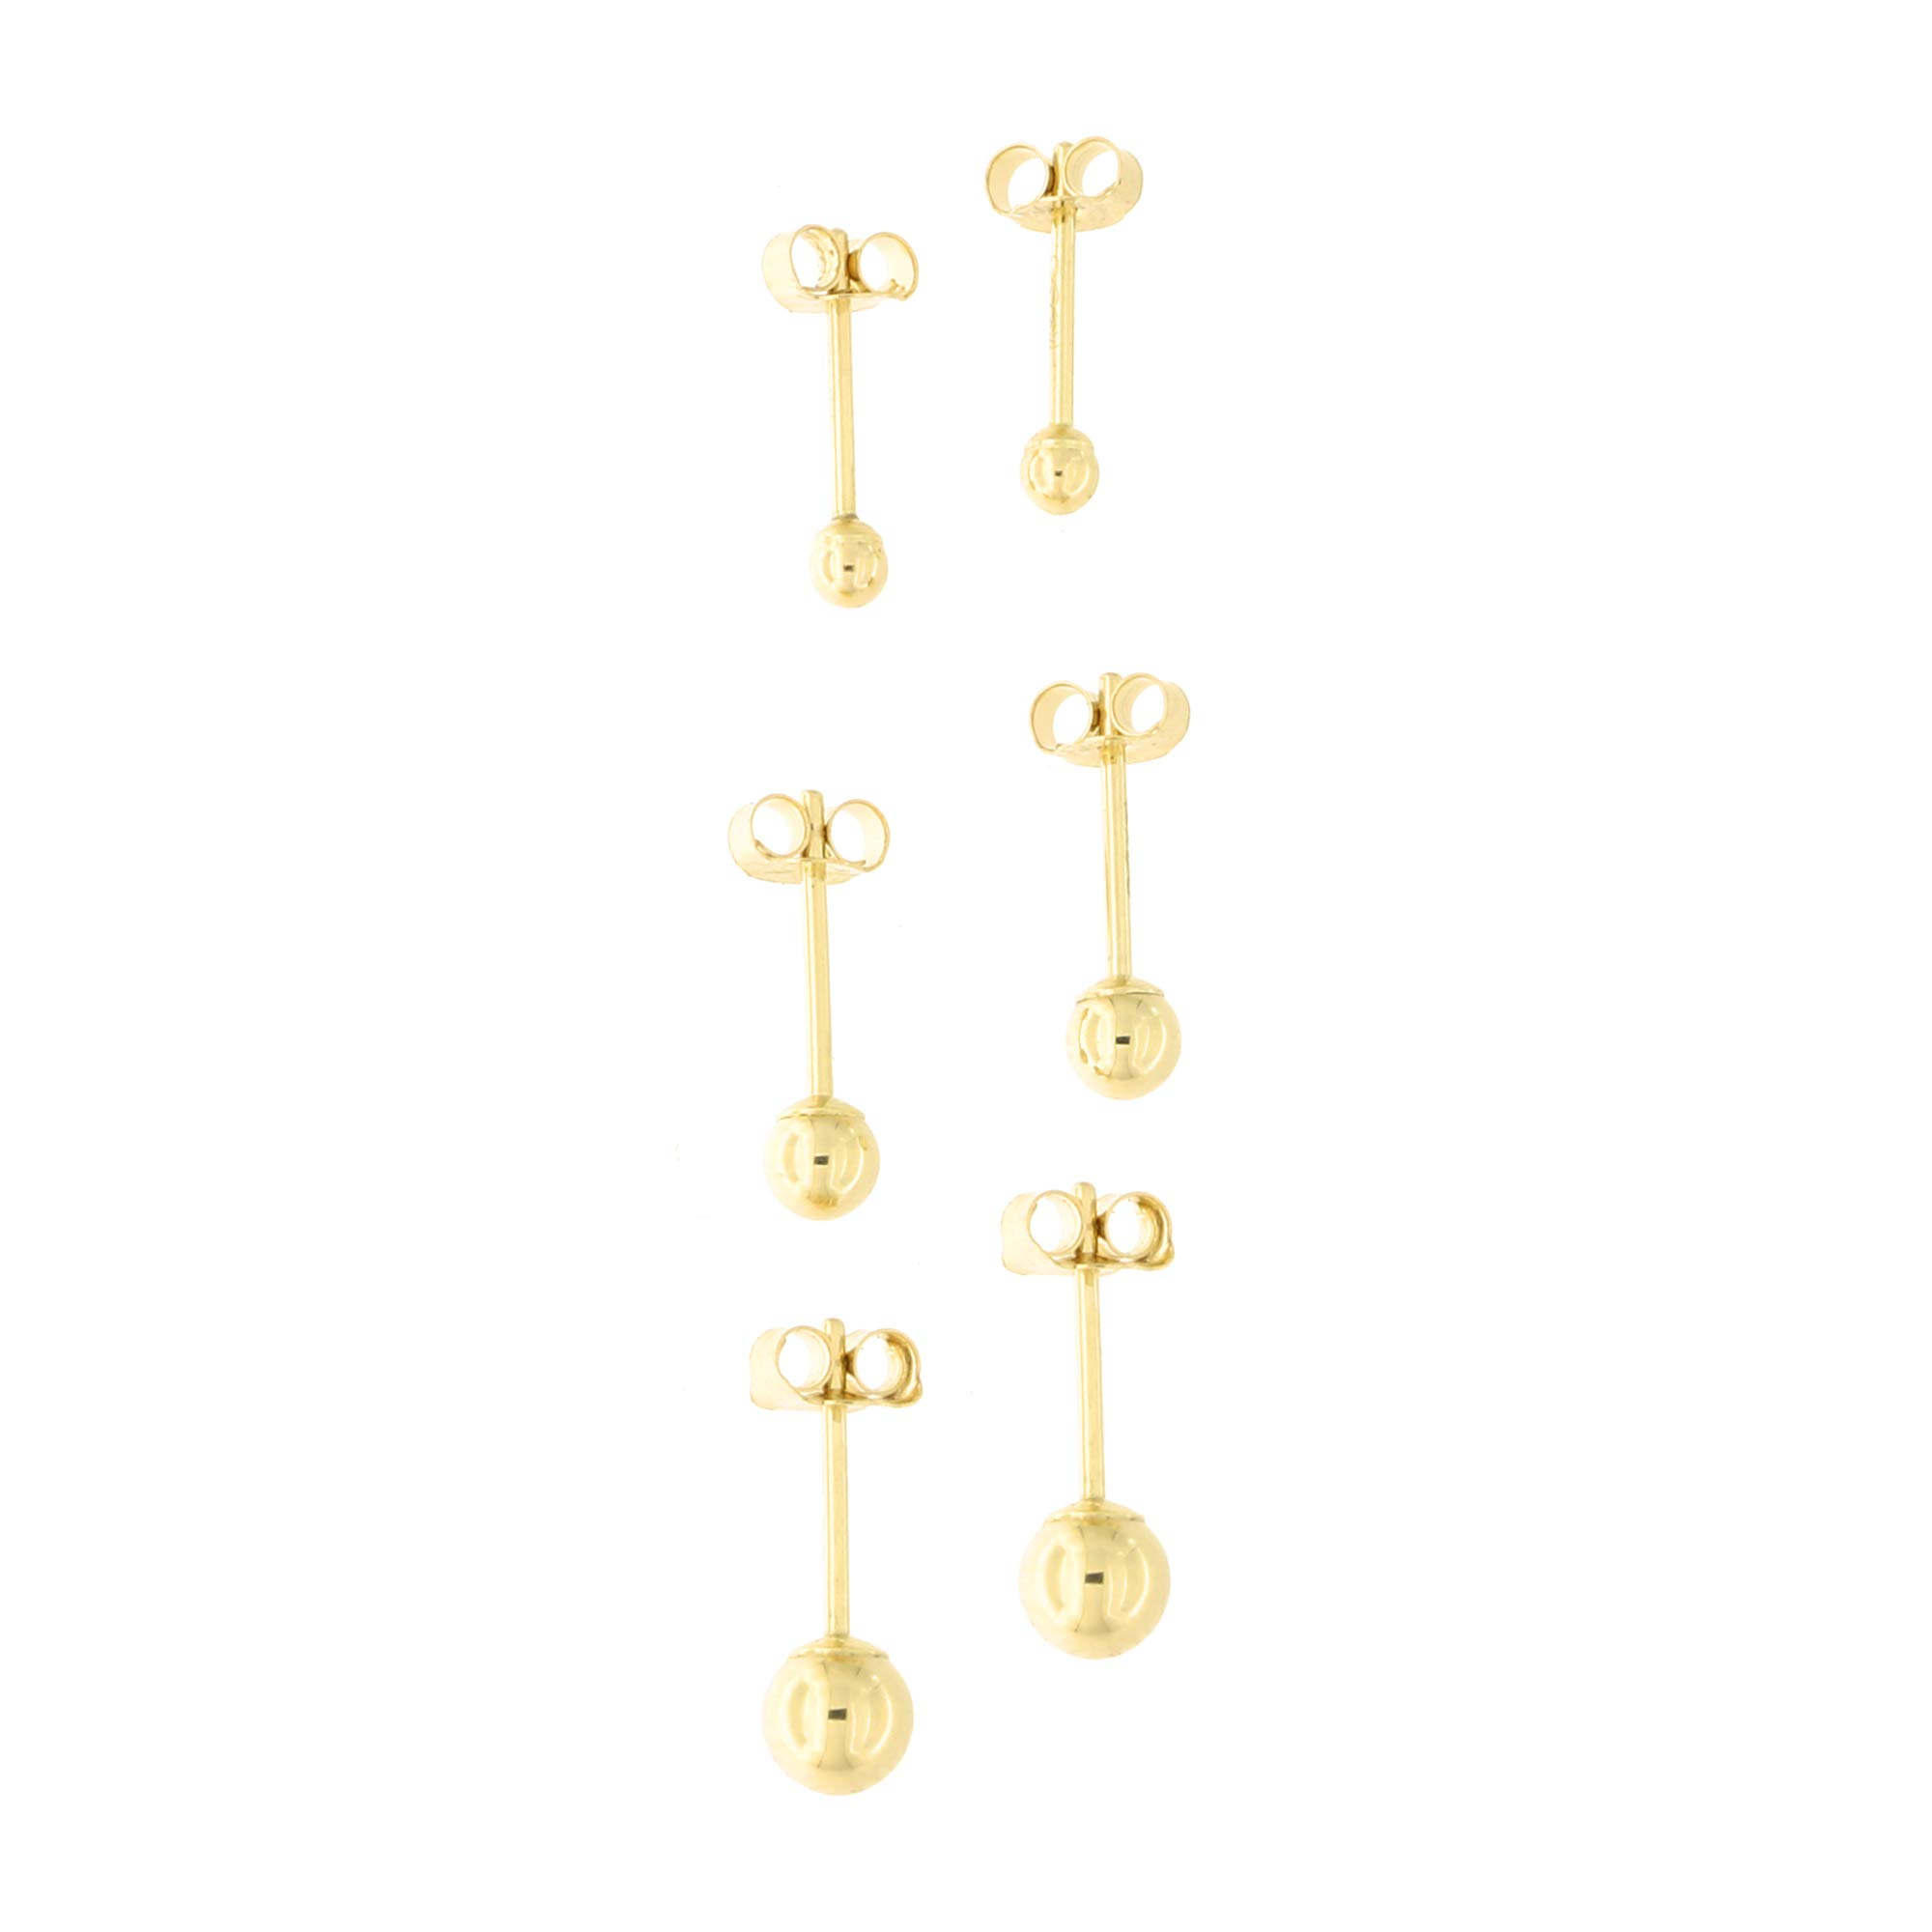 14k Yellow Gold 2 Millimeters, 3 Millimeters and 4 Millimeters Ball Stud Earrings Set